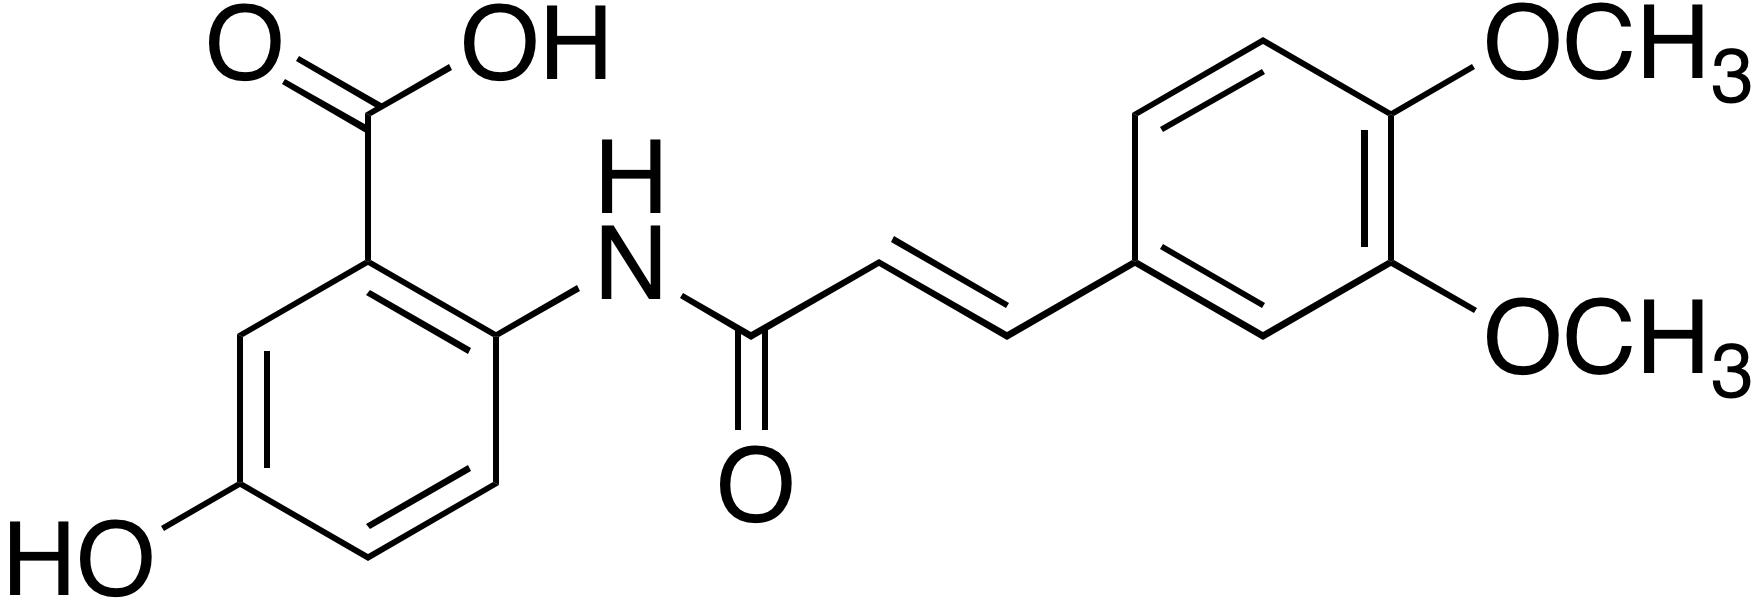 (E)-2-(3-(3,4-Dimethoxyphenyl)acrylamido)-5-hydroxybenzoic acid